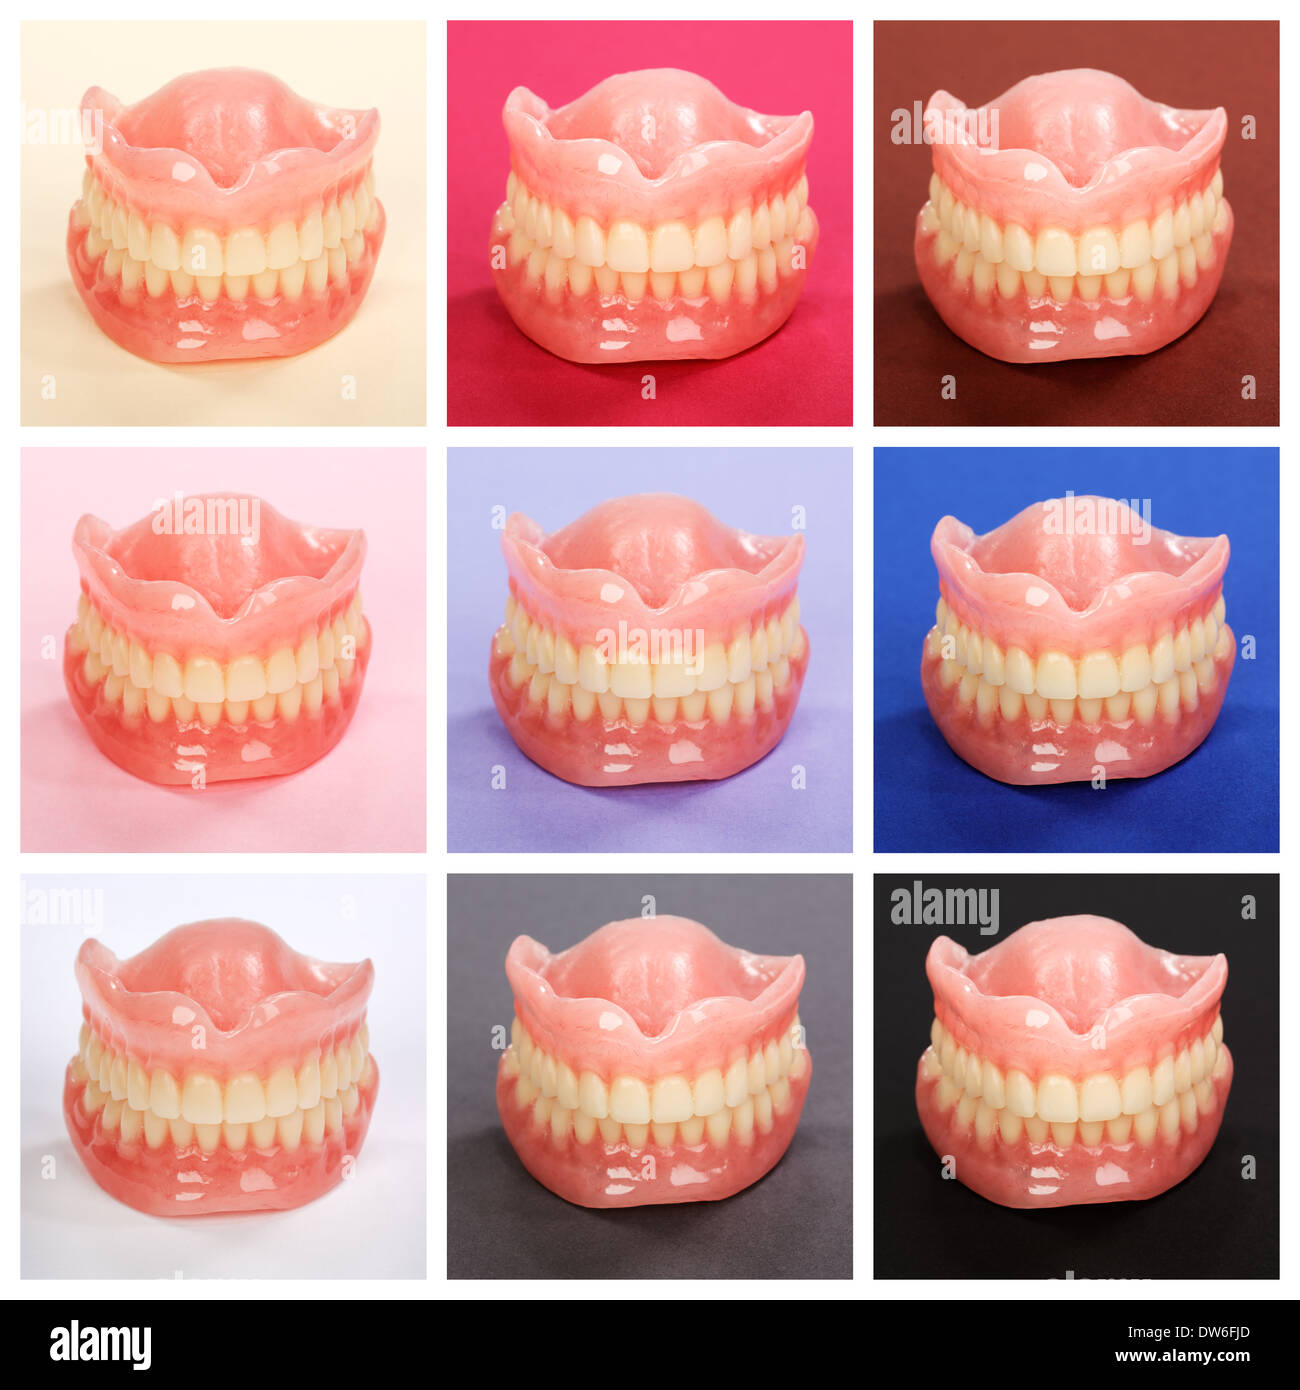 Compilation of dentures on colorful paper backgrounds - Stock Image